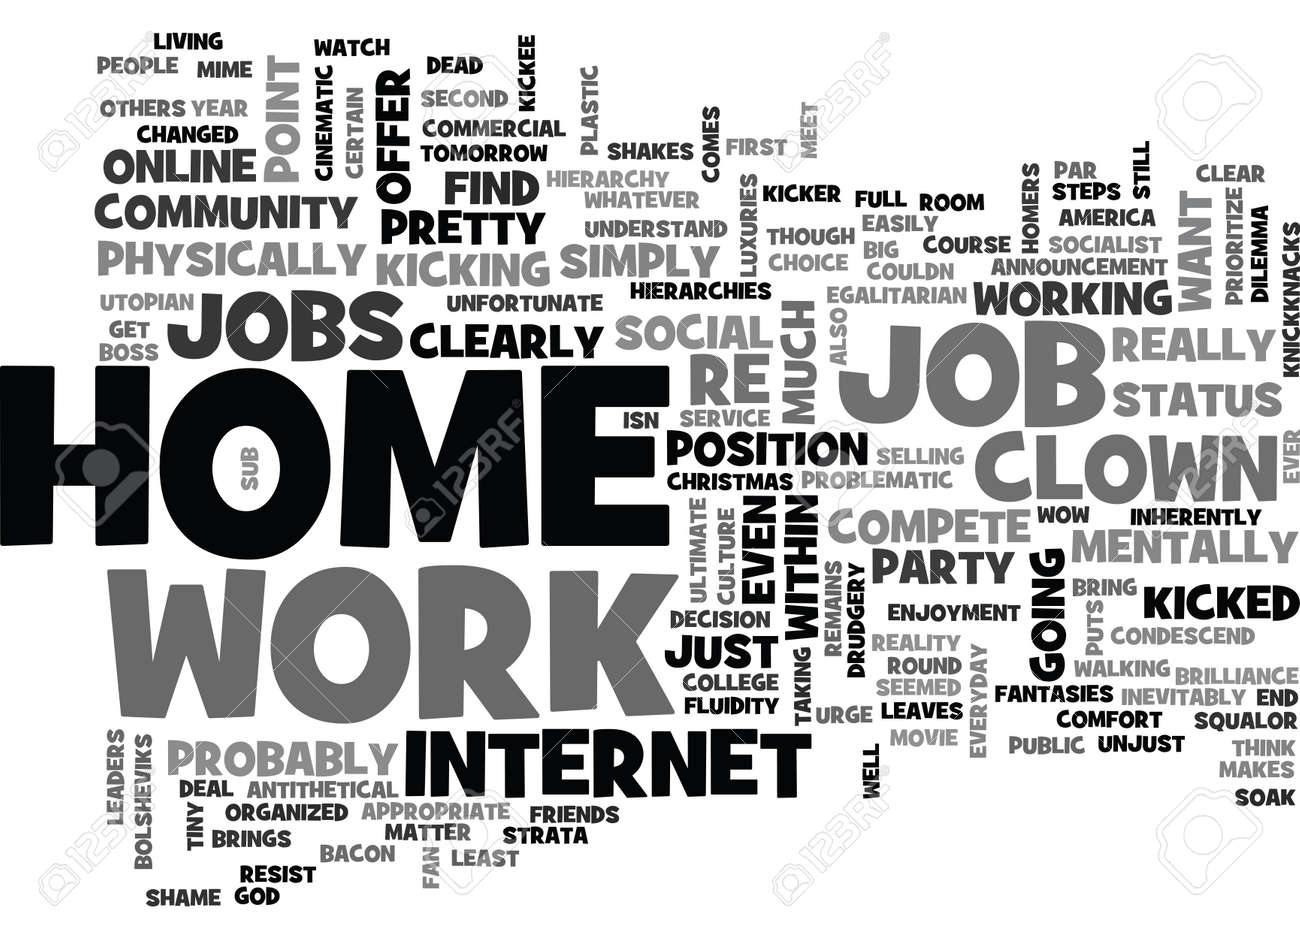 WORK AT HOME ONLINE JOBS BE YOUR OWN BOSS TEXT WORD CLOUD CONCEPT Be Your Own Boss Work From Home Job on working remotely from home, be your own boss entertainment, be your own person, work at home,